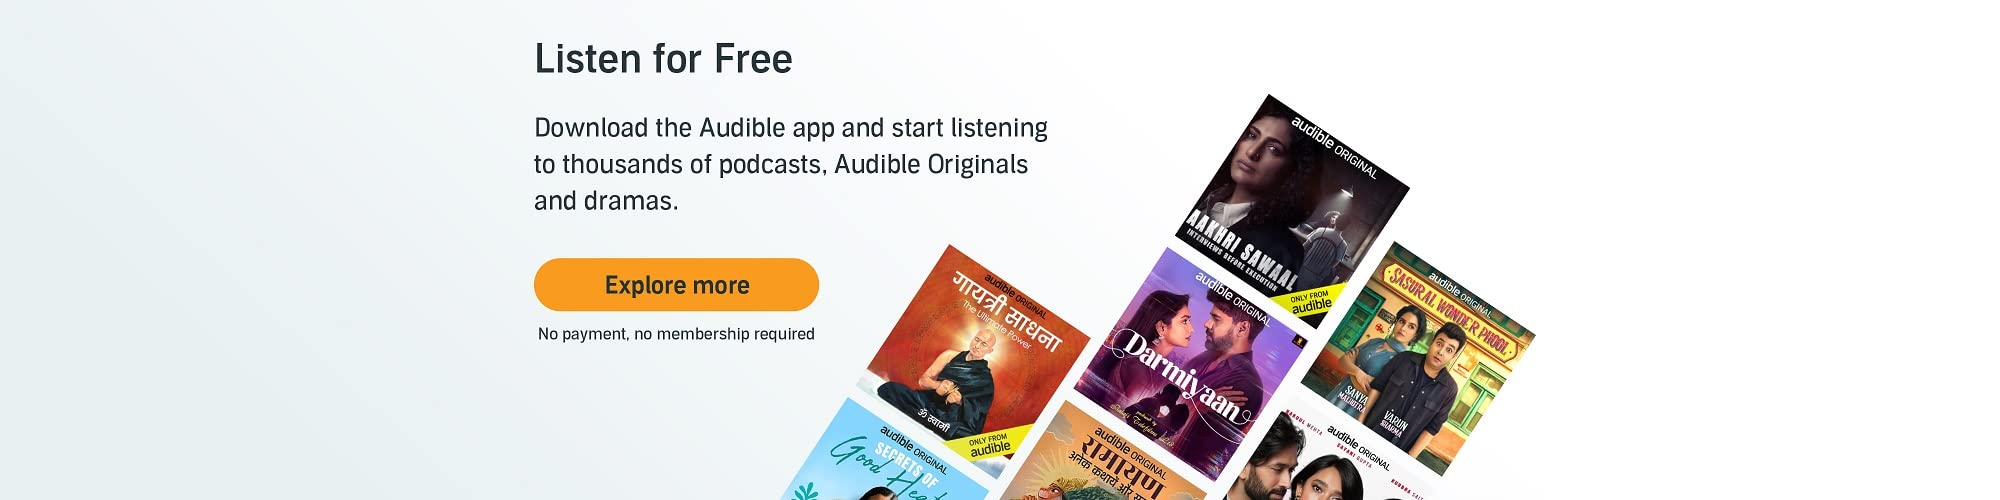 Listen for free, no membership no payment